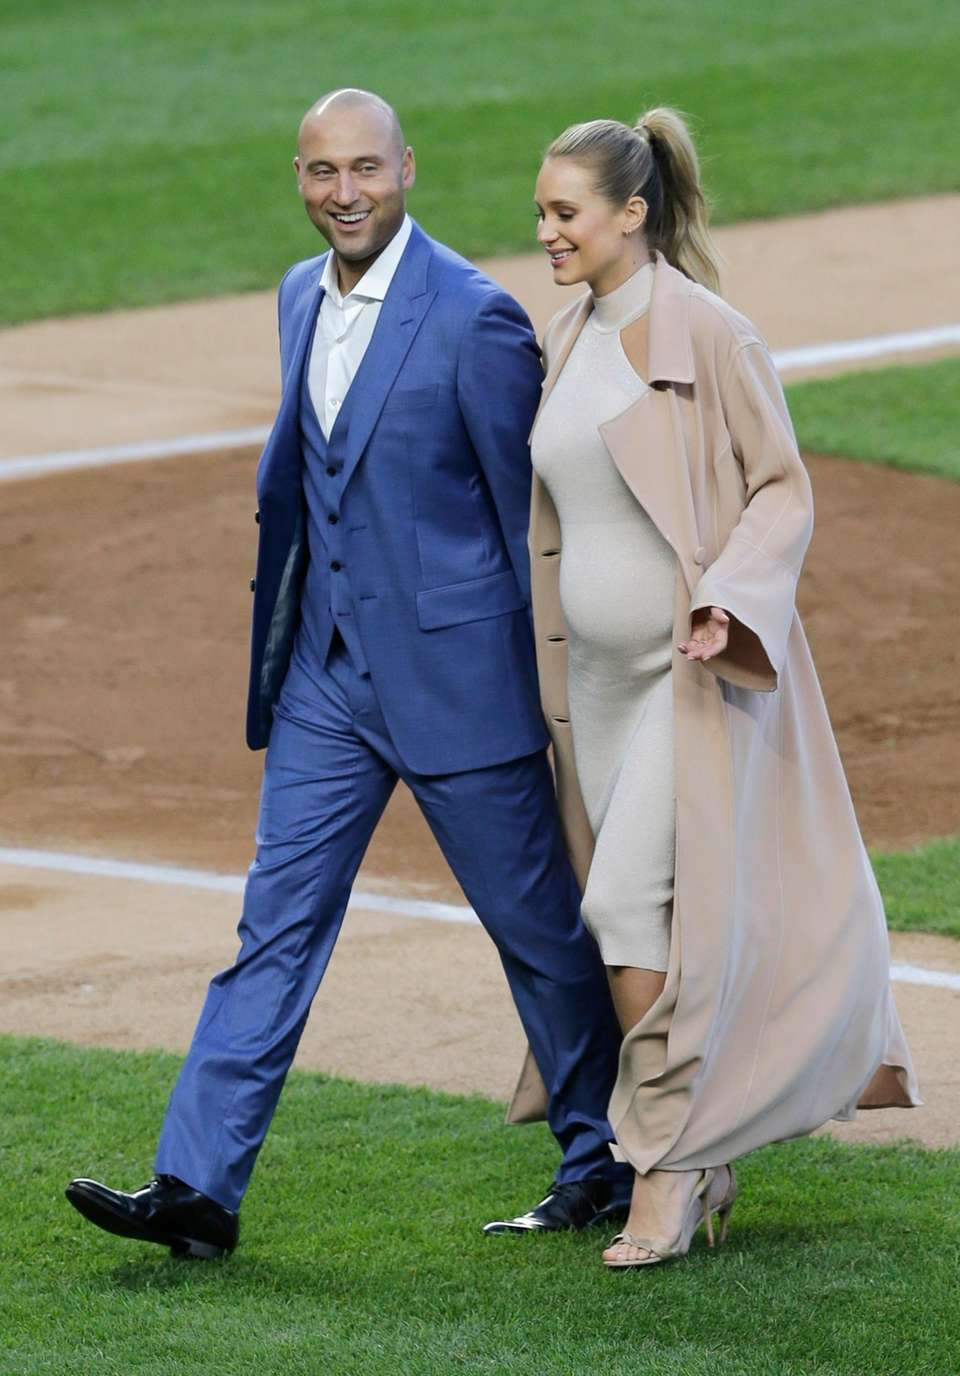 Former New York Yankee Derek Jeter and his